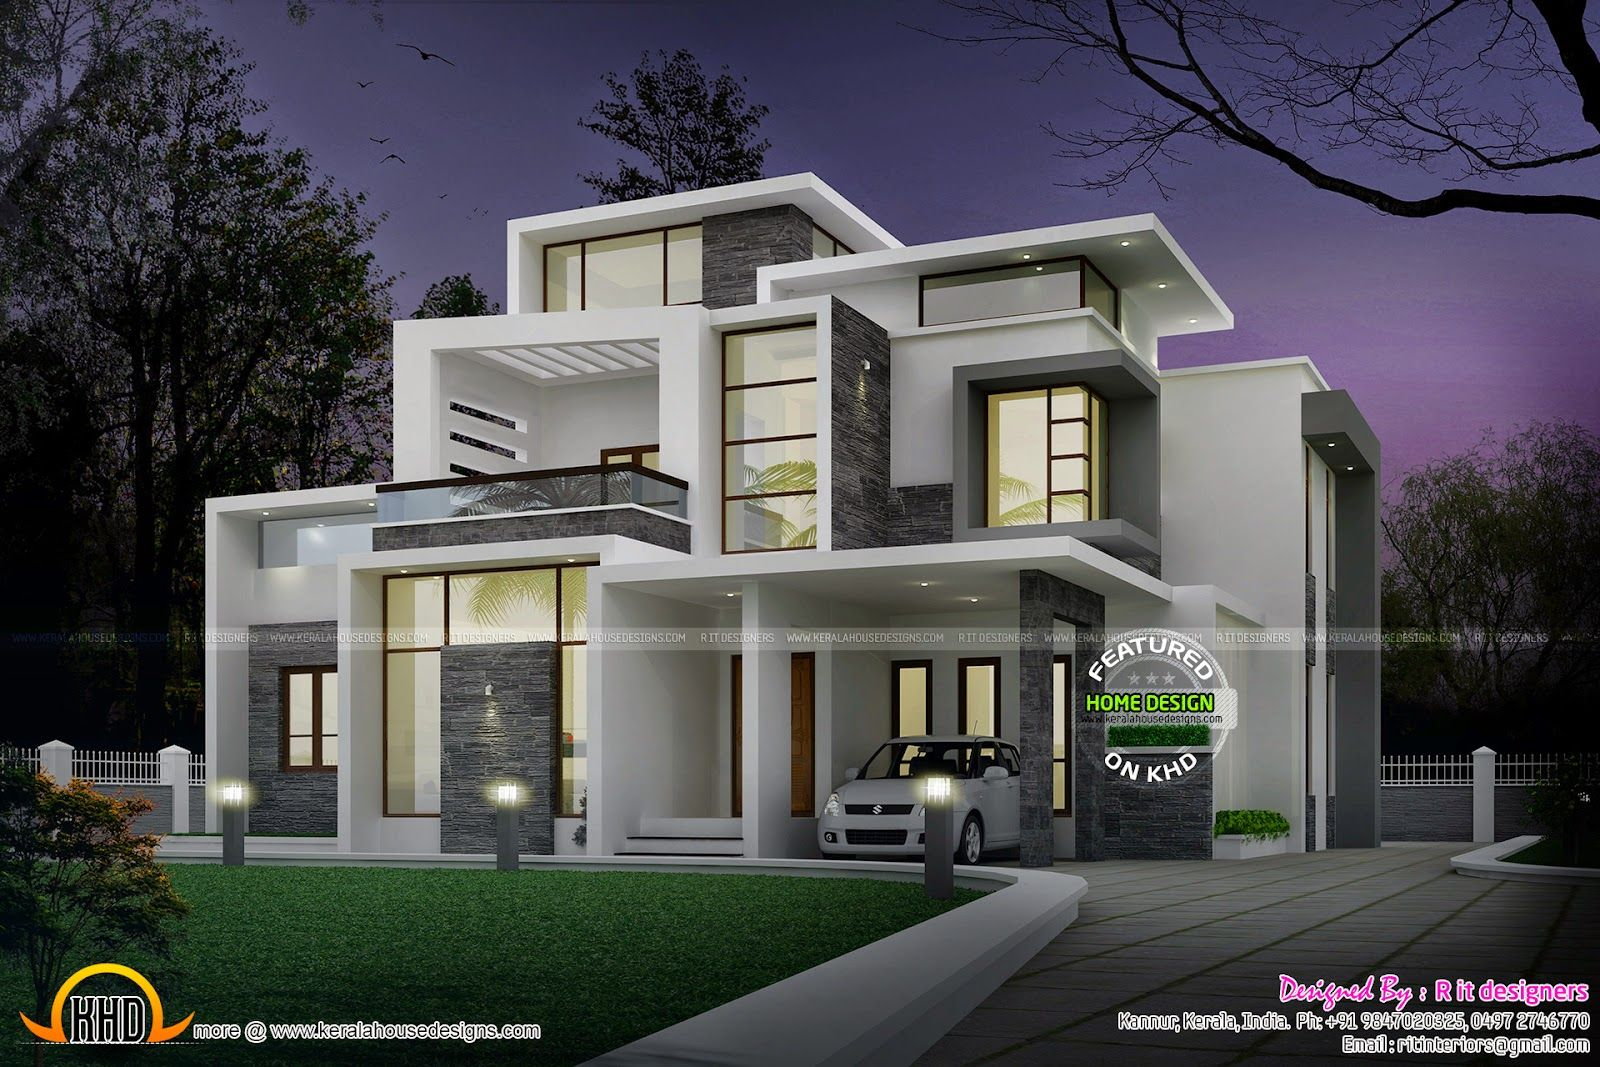 Grand contemporary home design kerala home design and for Modern tower house designs